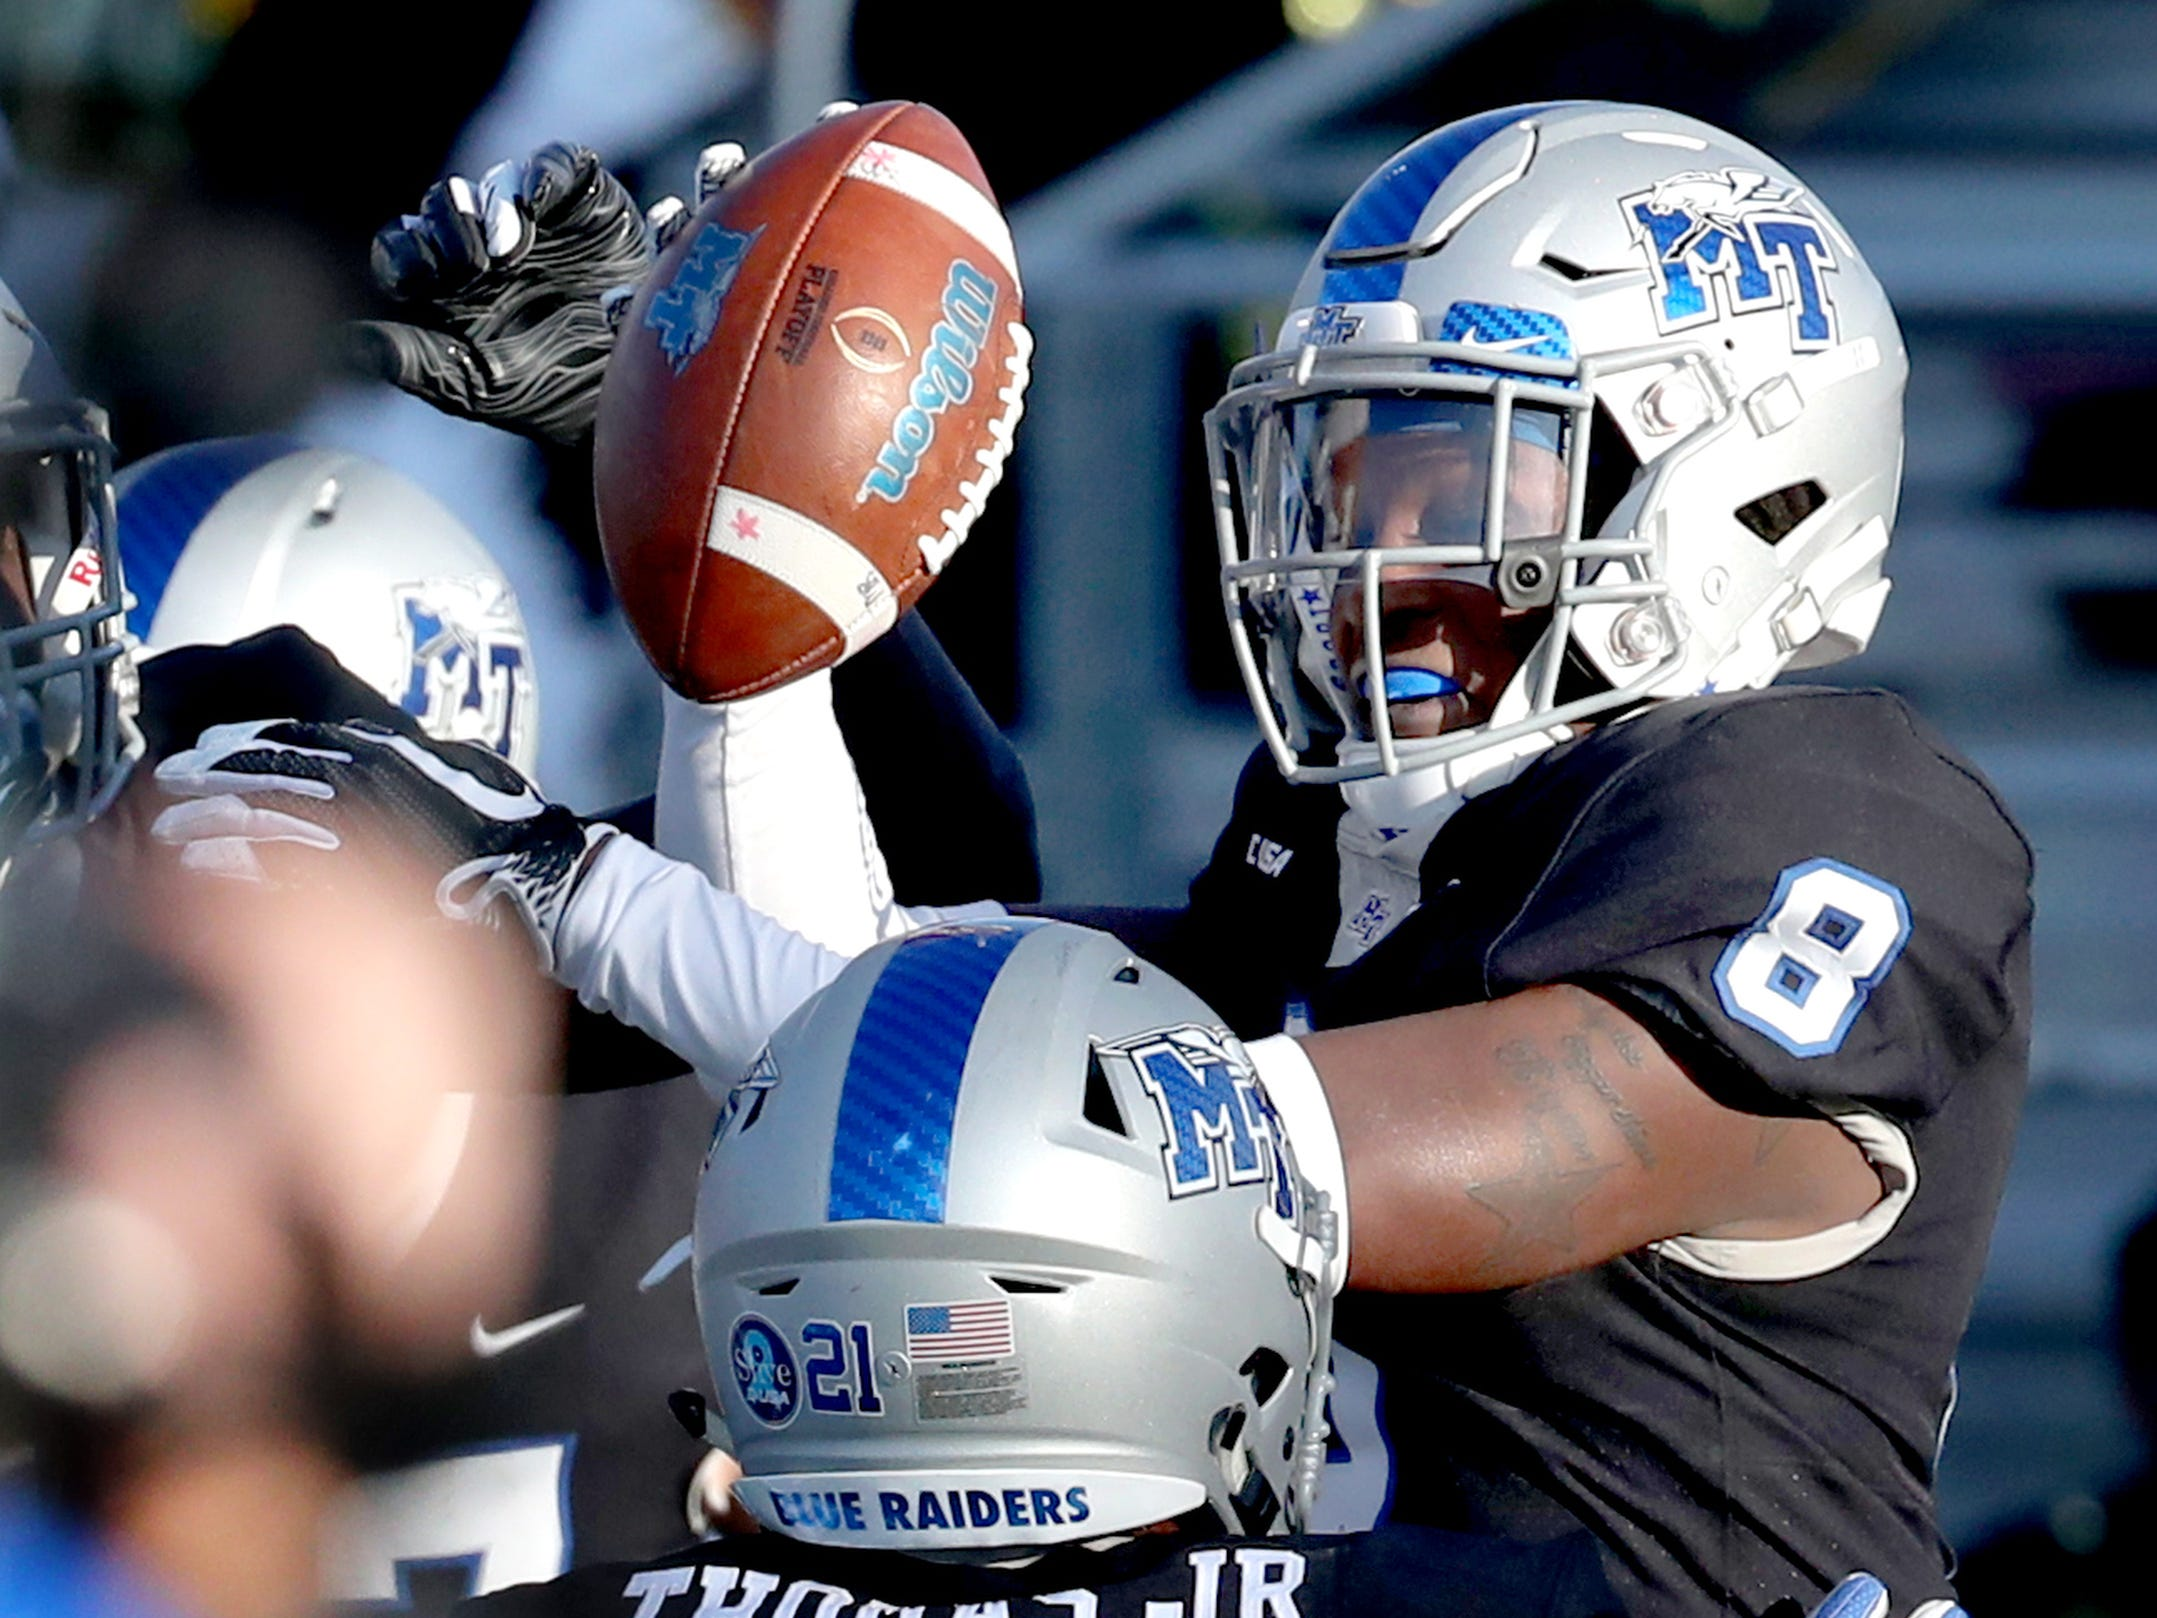 MTSU's Ty Lee (8) is lifted into the air by Tavares Thomas after Lee scored a touchdown against UAB during the game at MTSU on Saturday, Nov. 24, 2018.